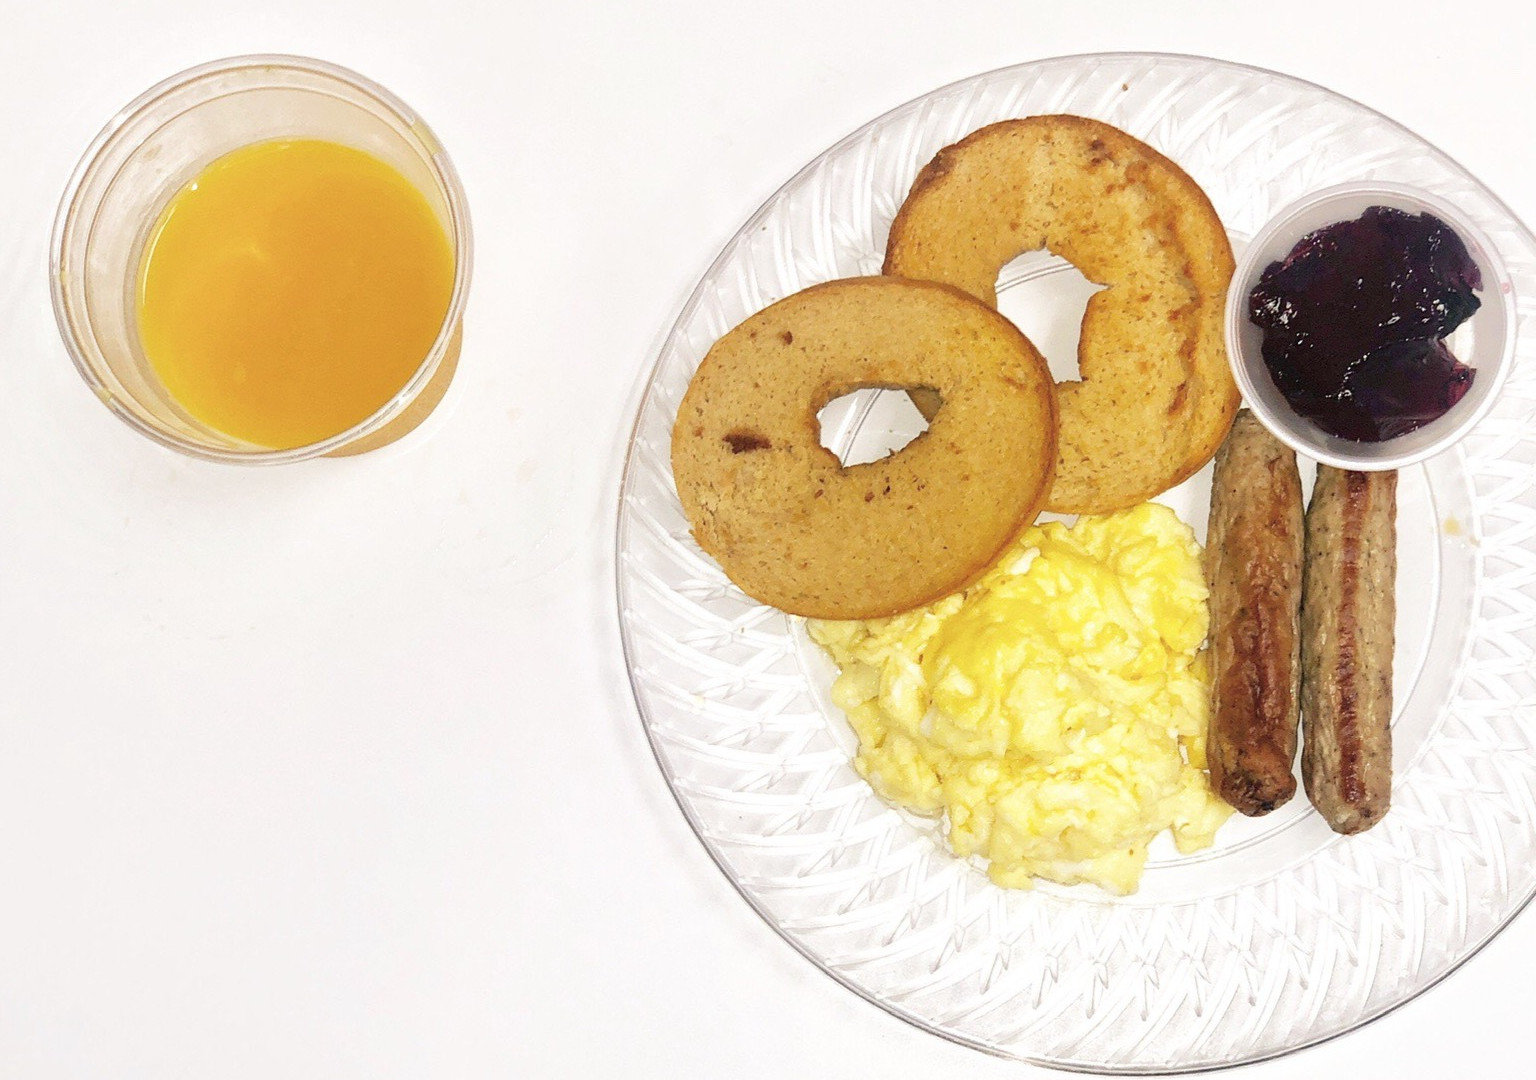 bagels with eggs and turkey sausage with a side of grape jelly and orange juice